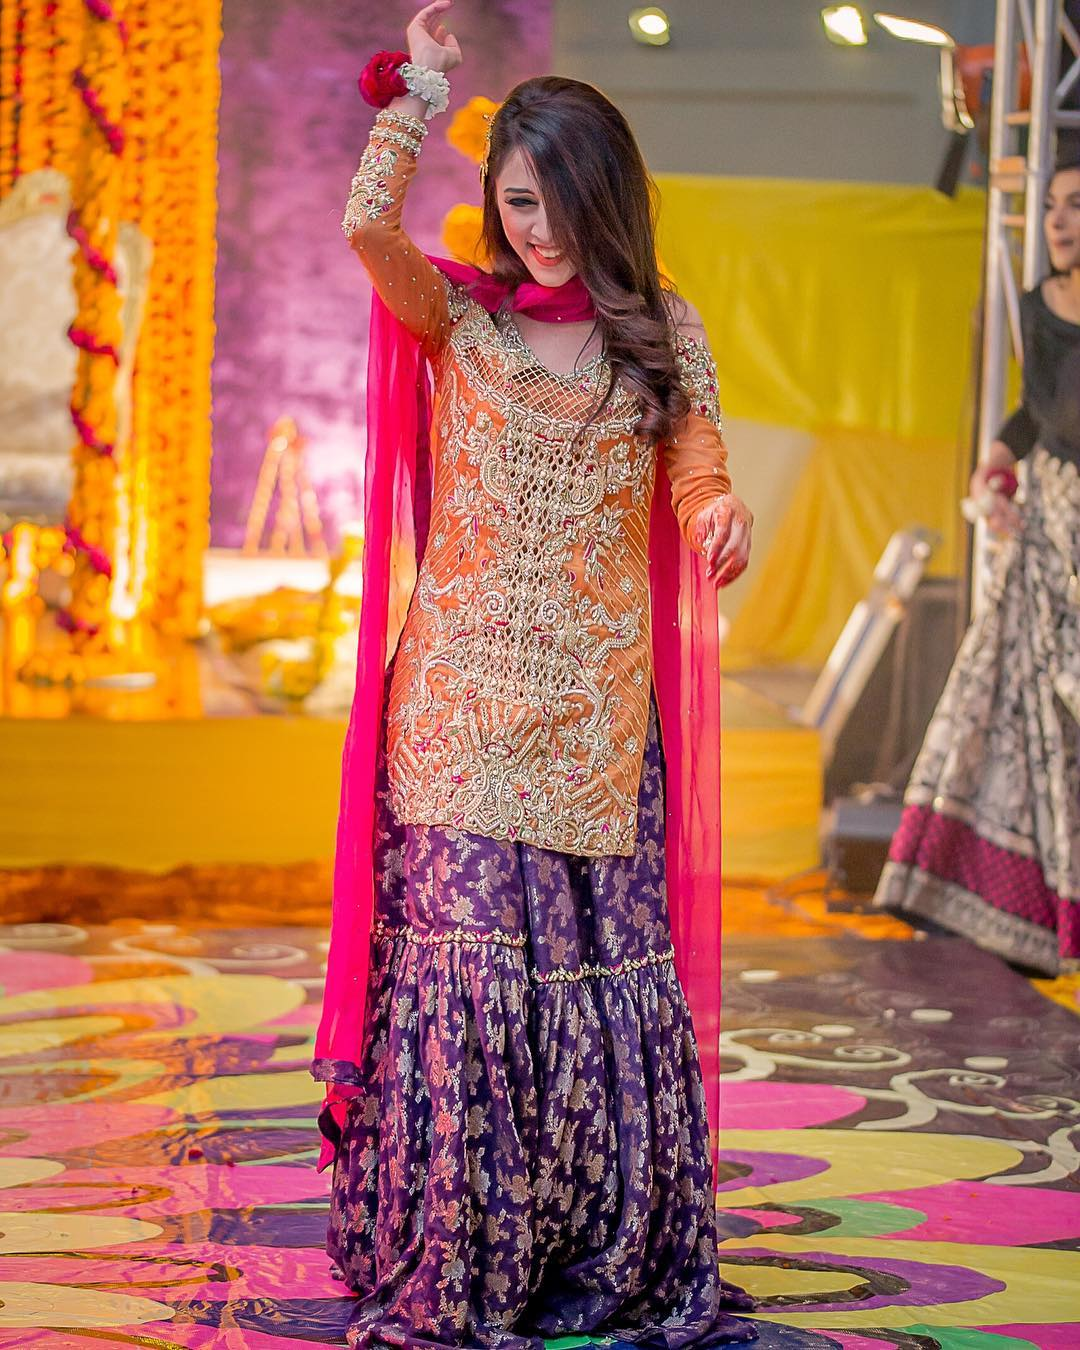 White Wedding Dress With Henna: Bridal Inspiration From Real Pakistani Brides!